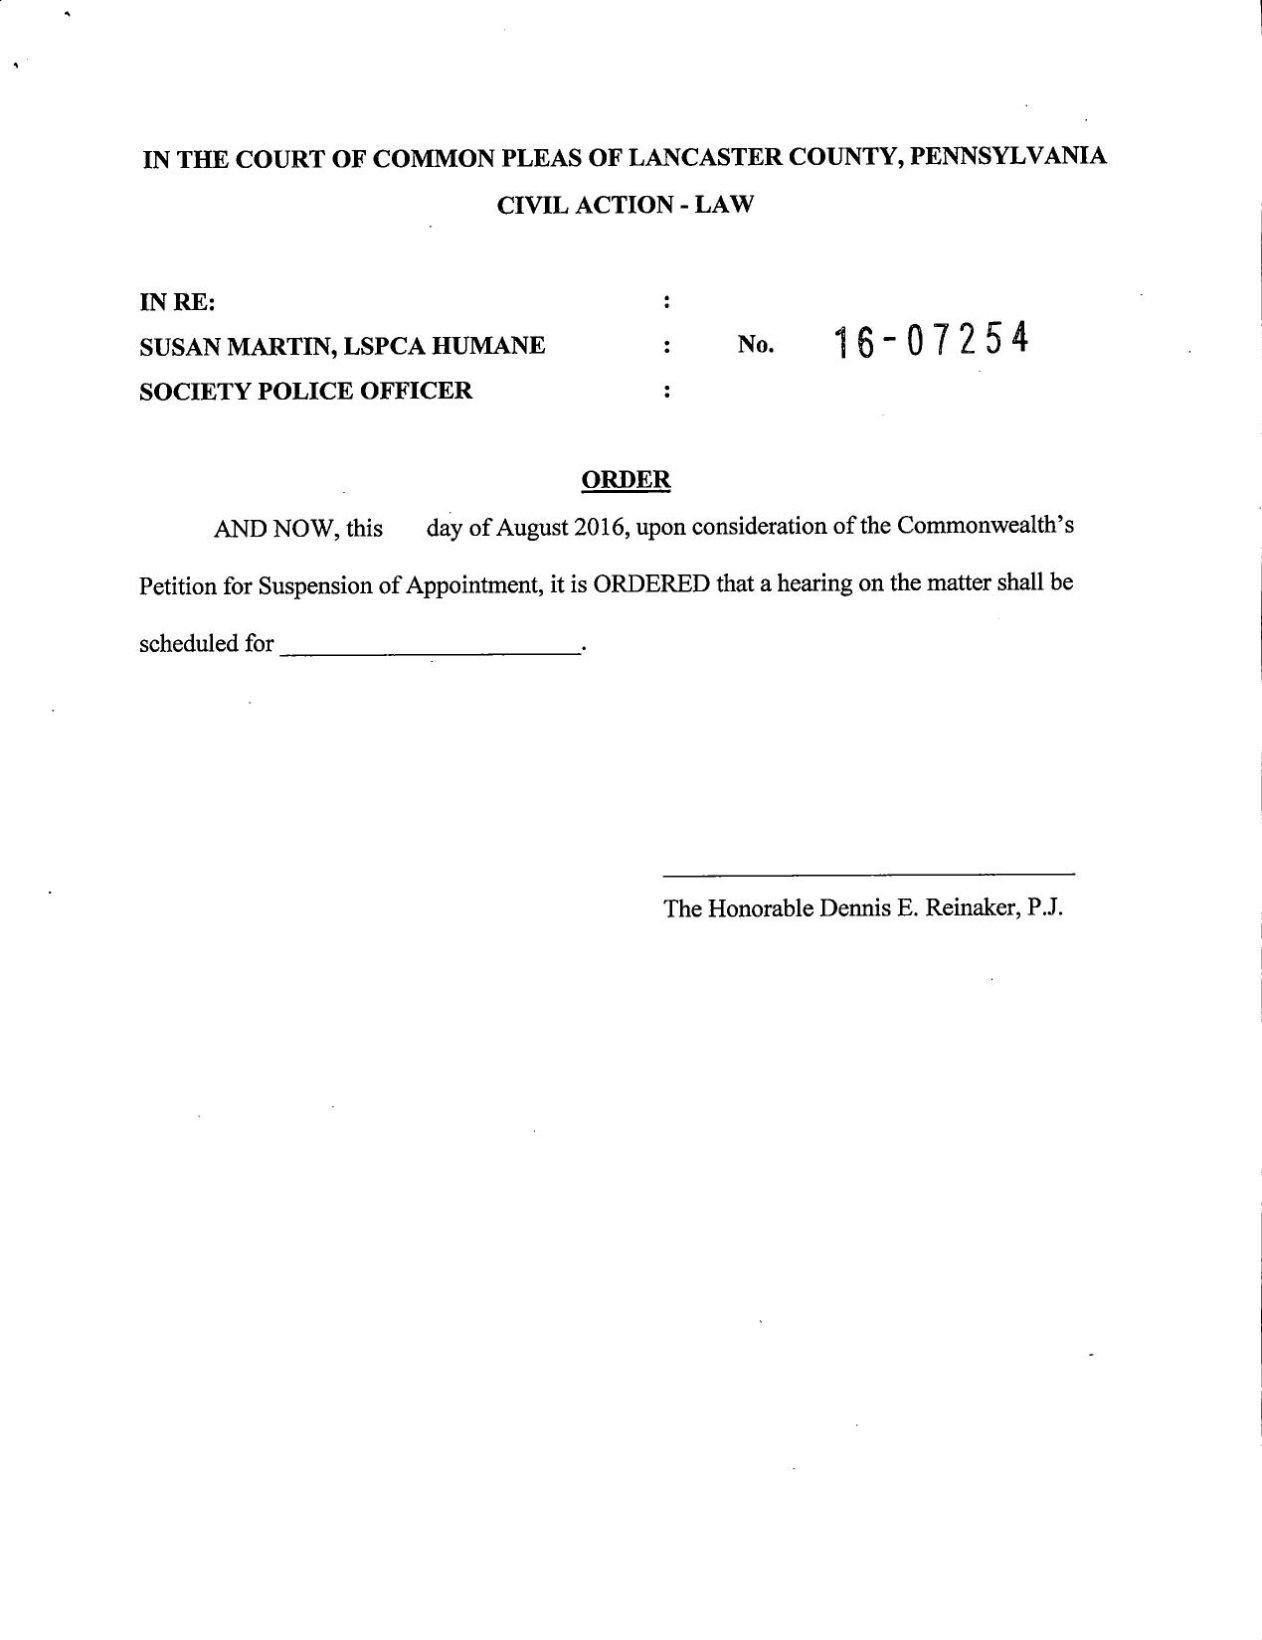 Commonwealth's Petition for suspension of Appointment